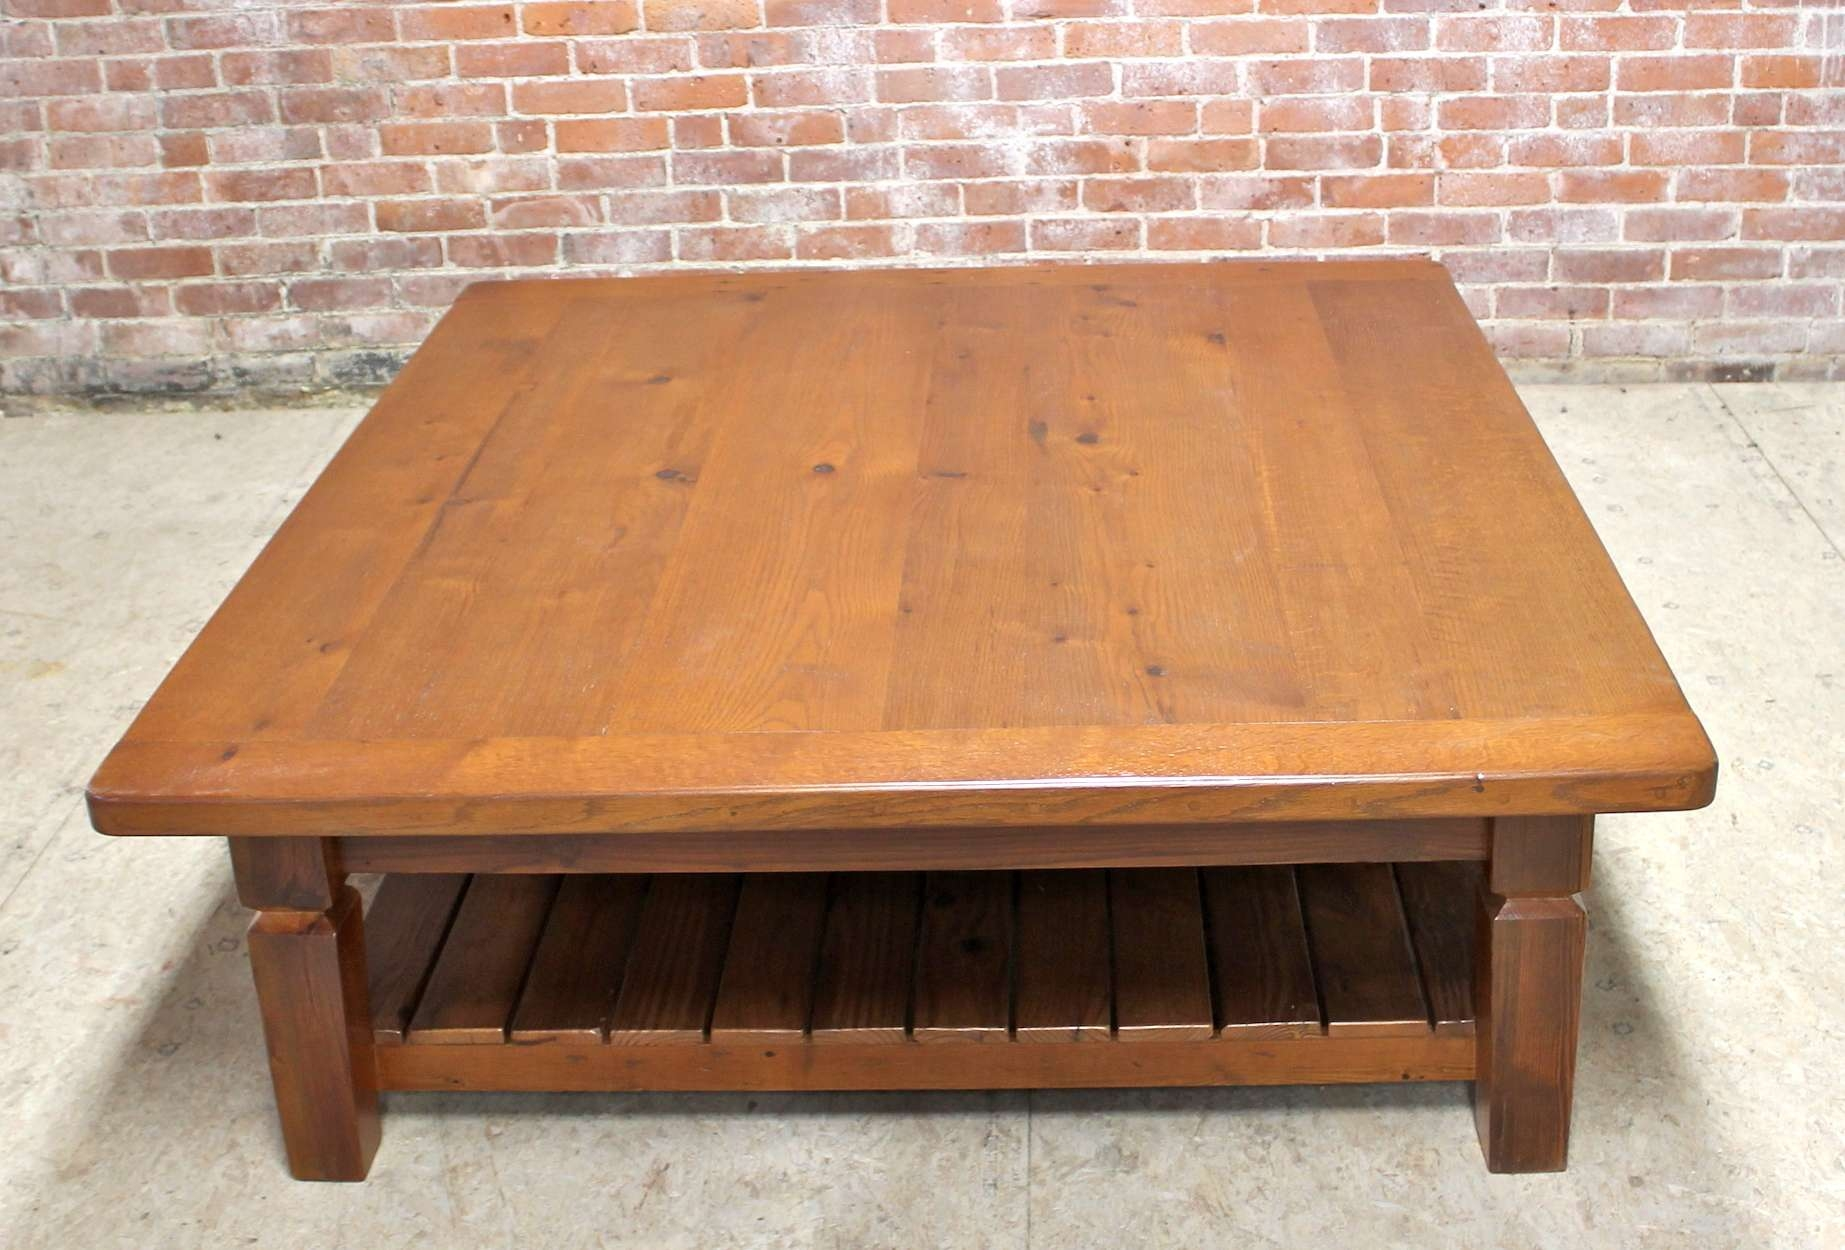 Oak Coffee Table With Slatted Shelf – Ecustomfinishes In Most Popular Oak Coffee Table With Shelf (View 13 of 20)